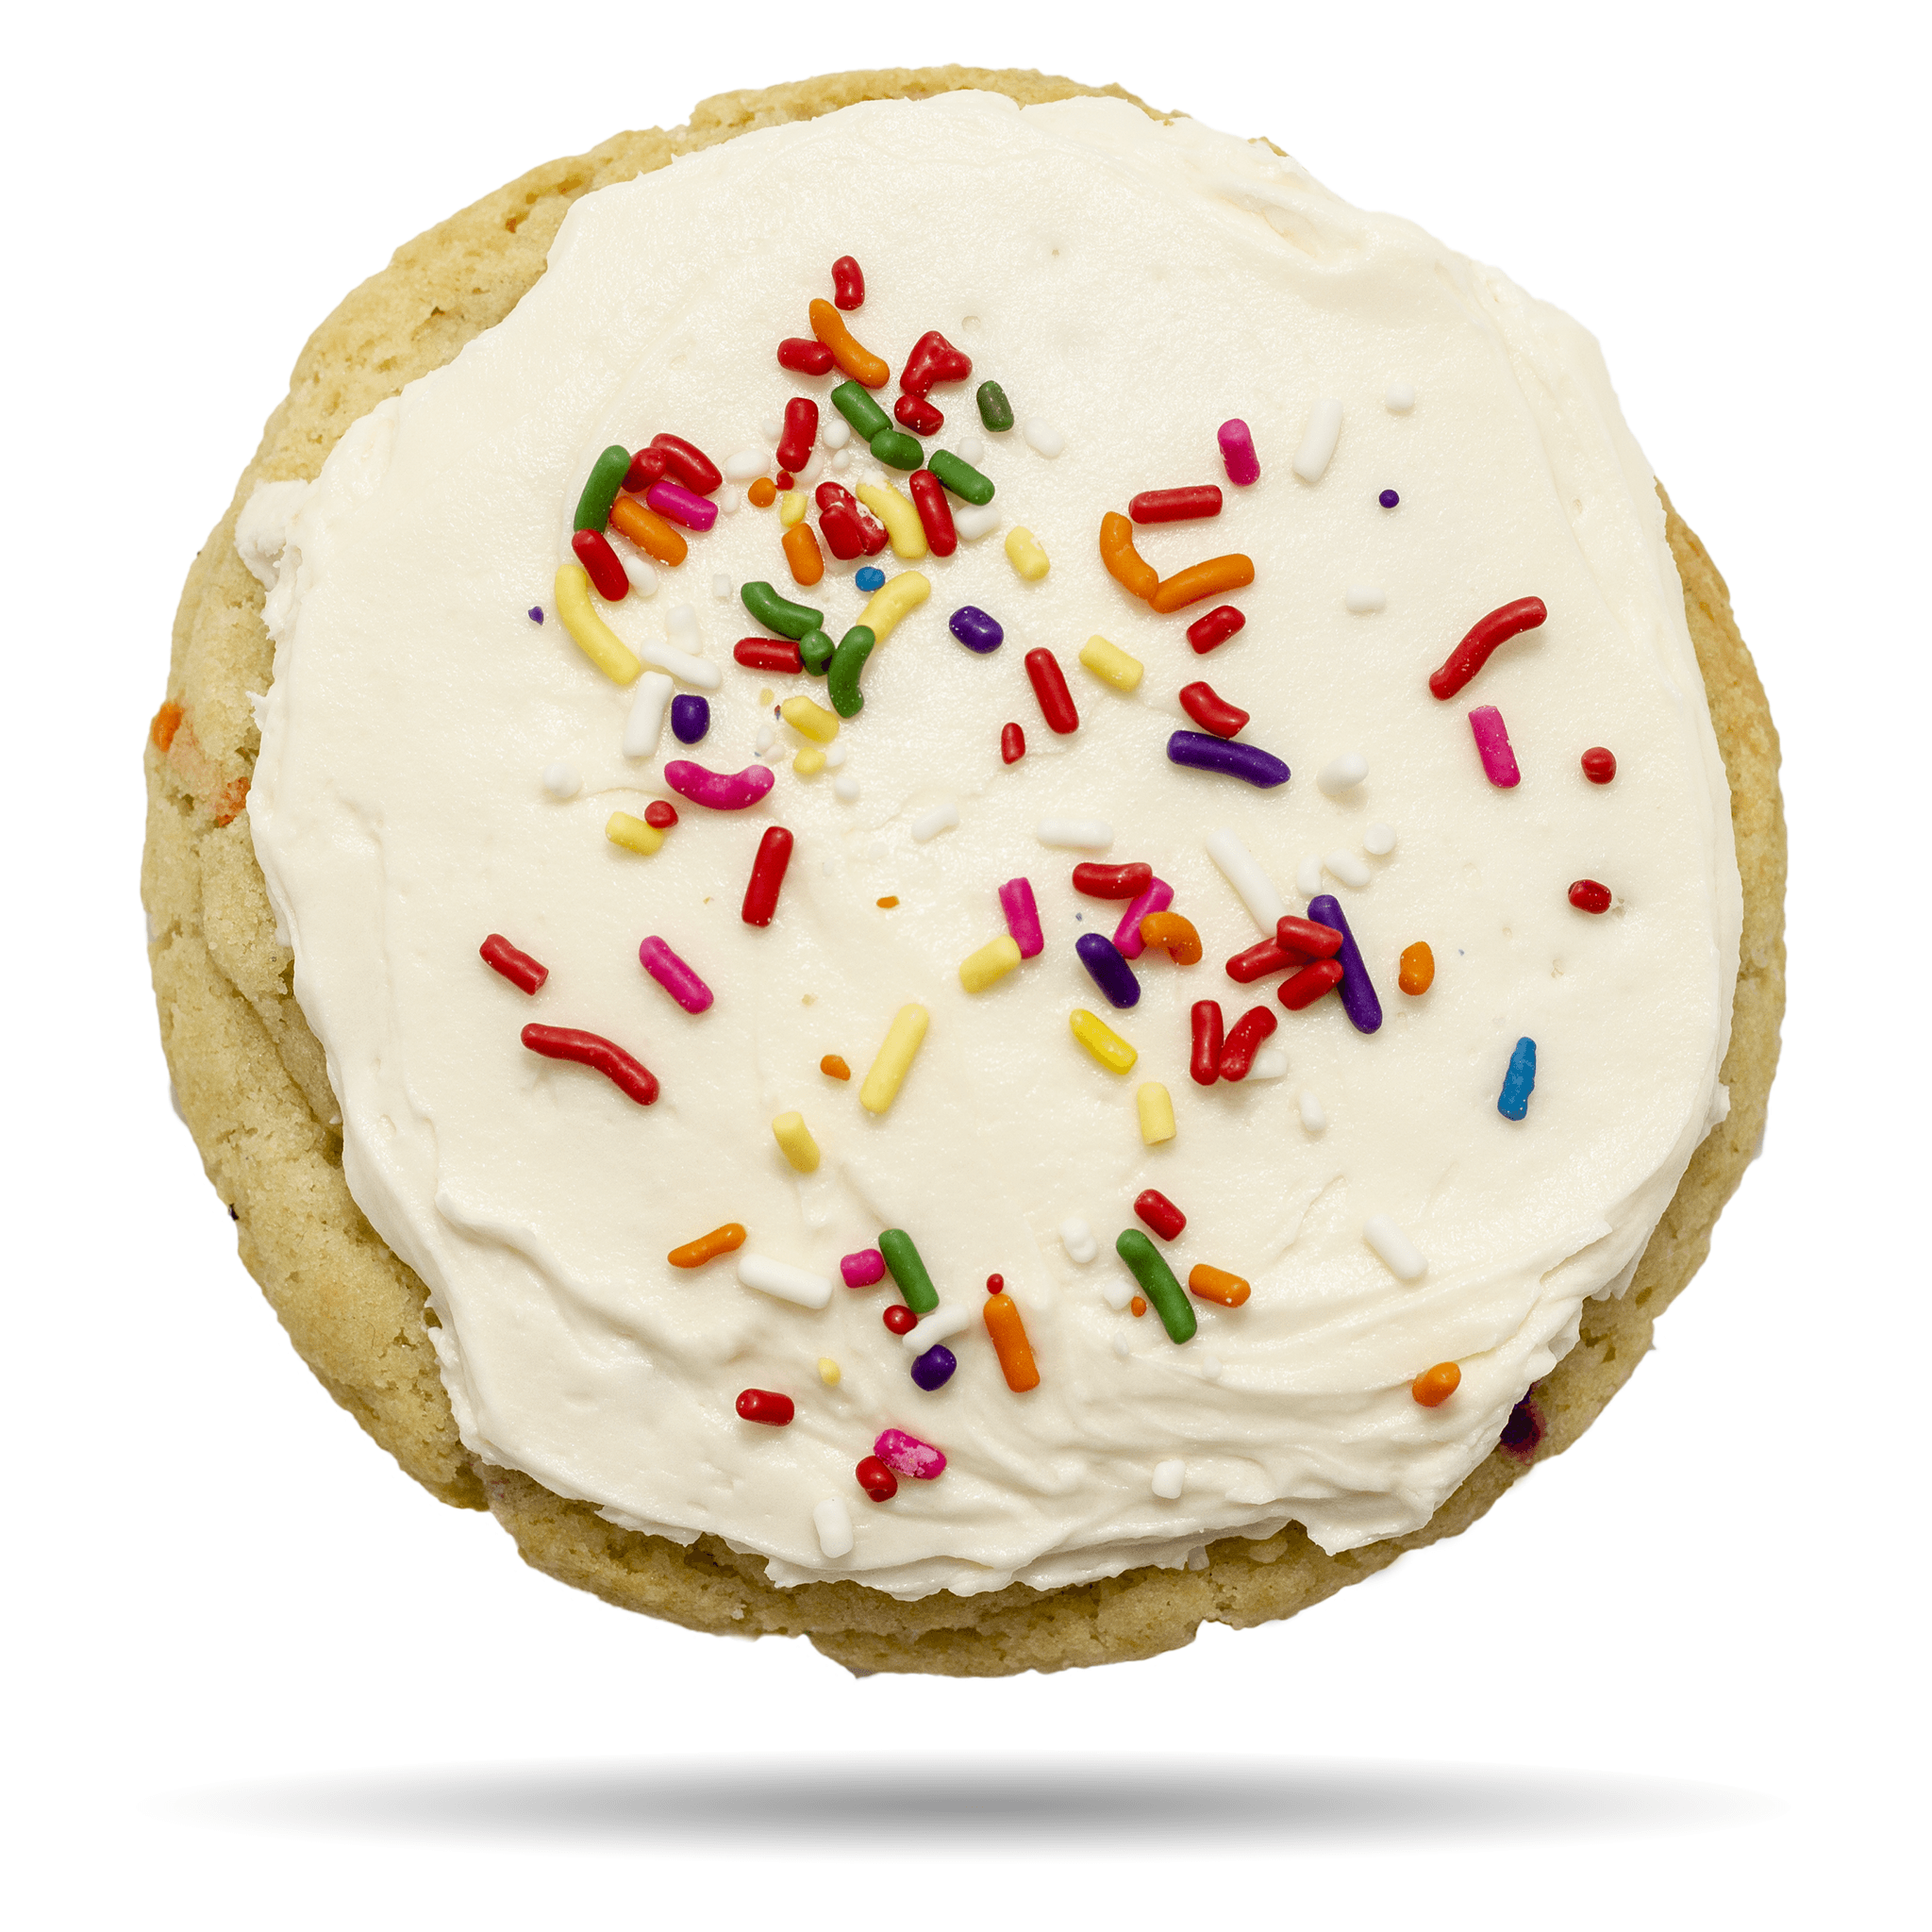 Sugar cookie with sprinkles and fluffy frosting - Elaine Cookie by Rewhipped in Utah